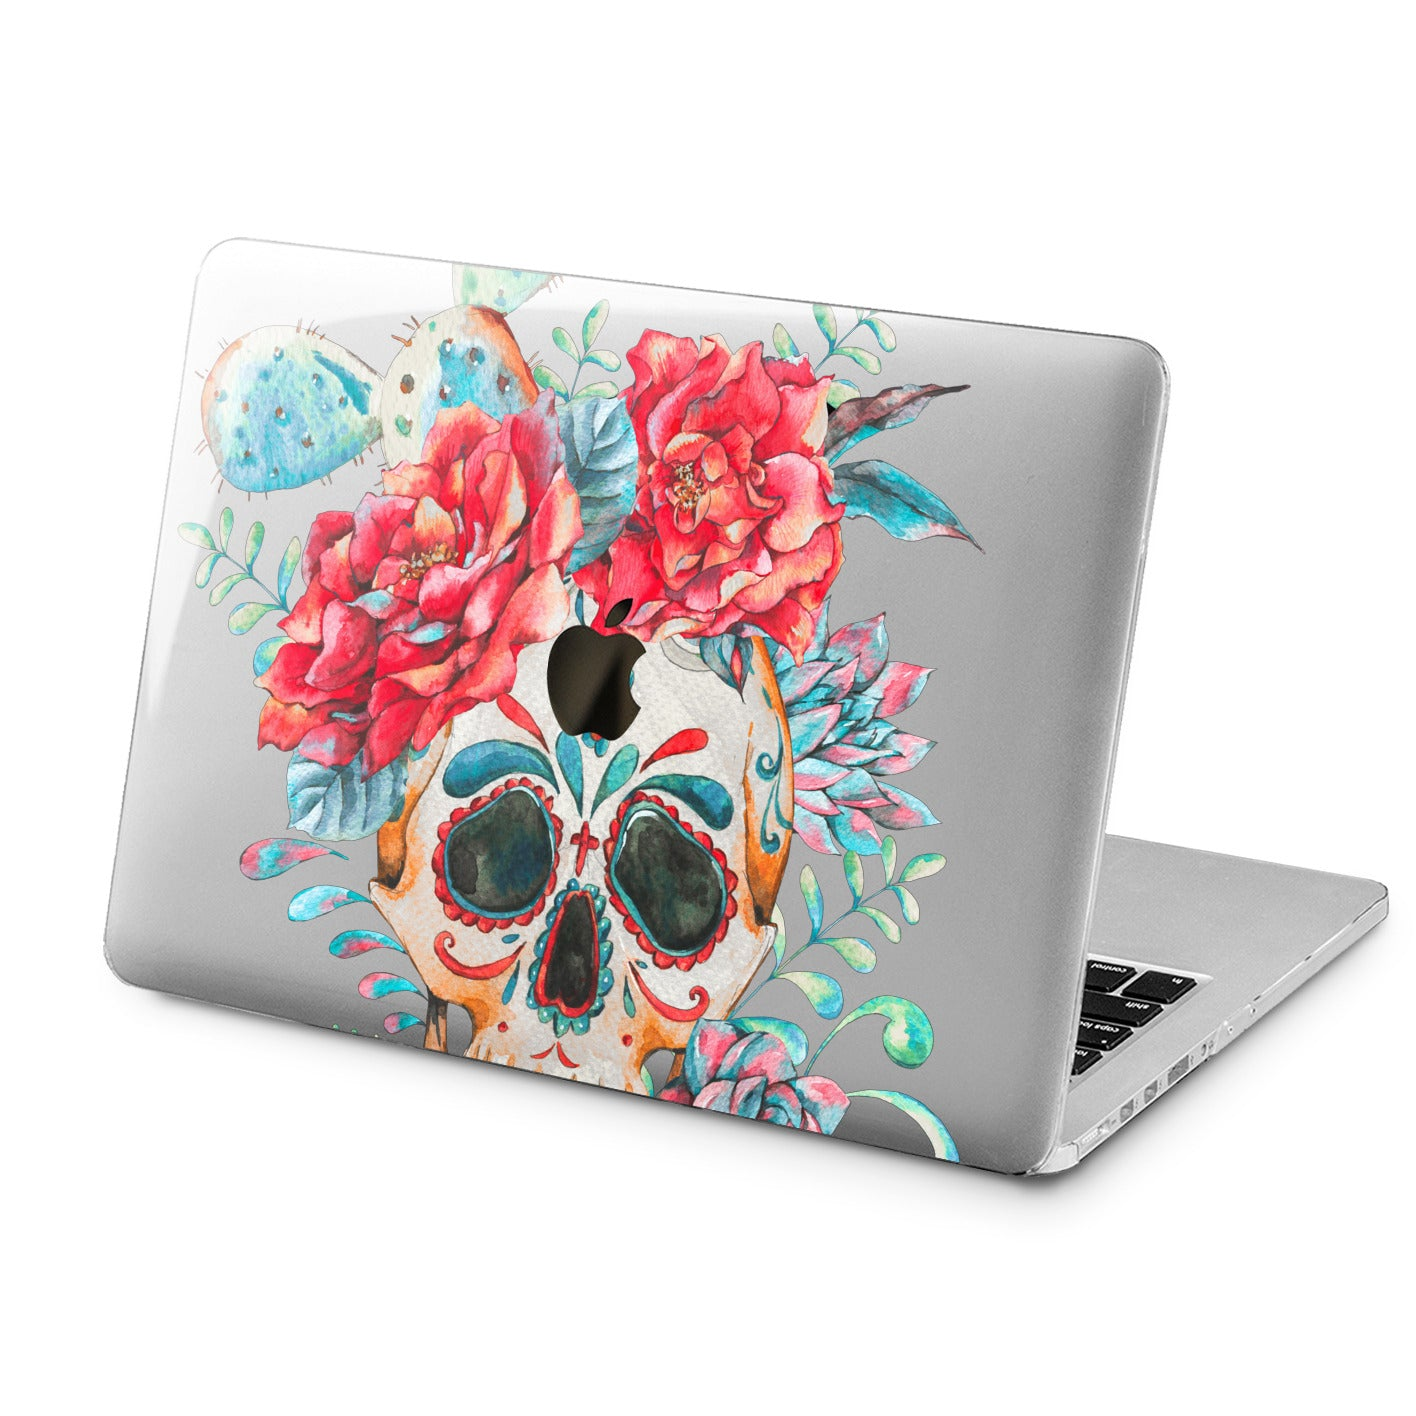 Lex Altern Lex Altern Colorful Floral Skull Case for your Laptop Apple Macbook.